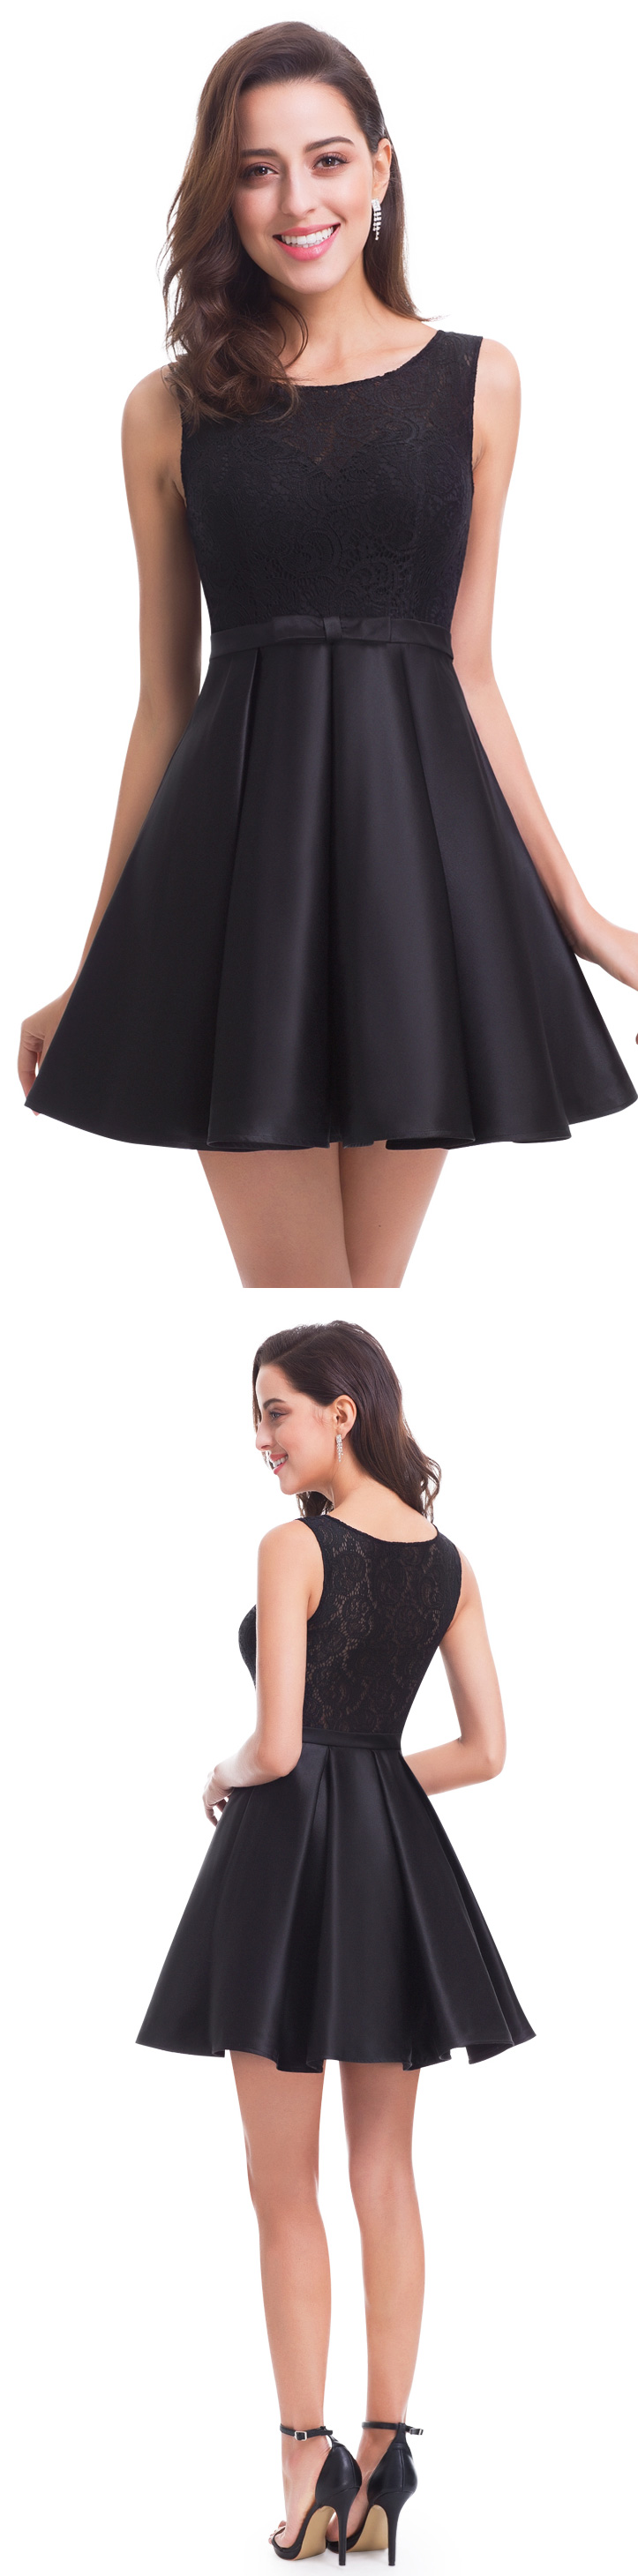 Black round neck fit and flare party dress party dress